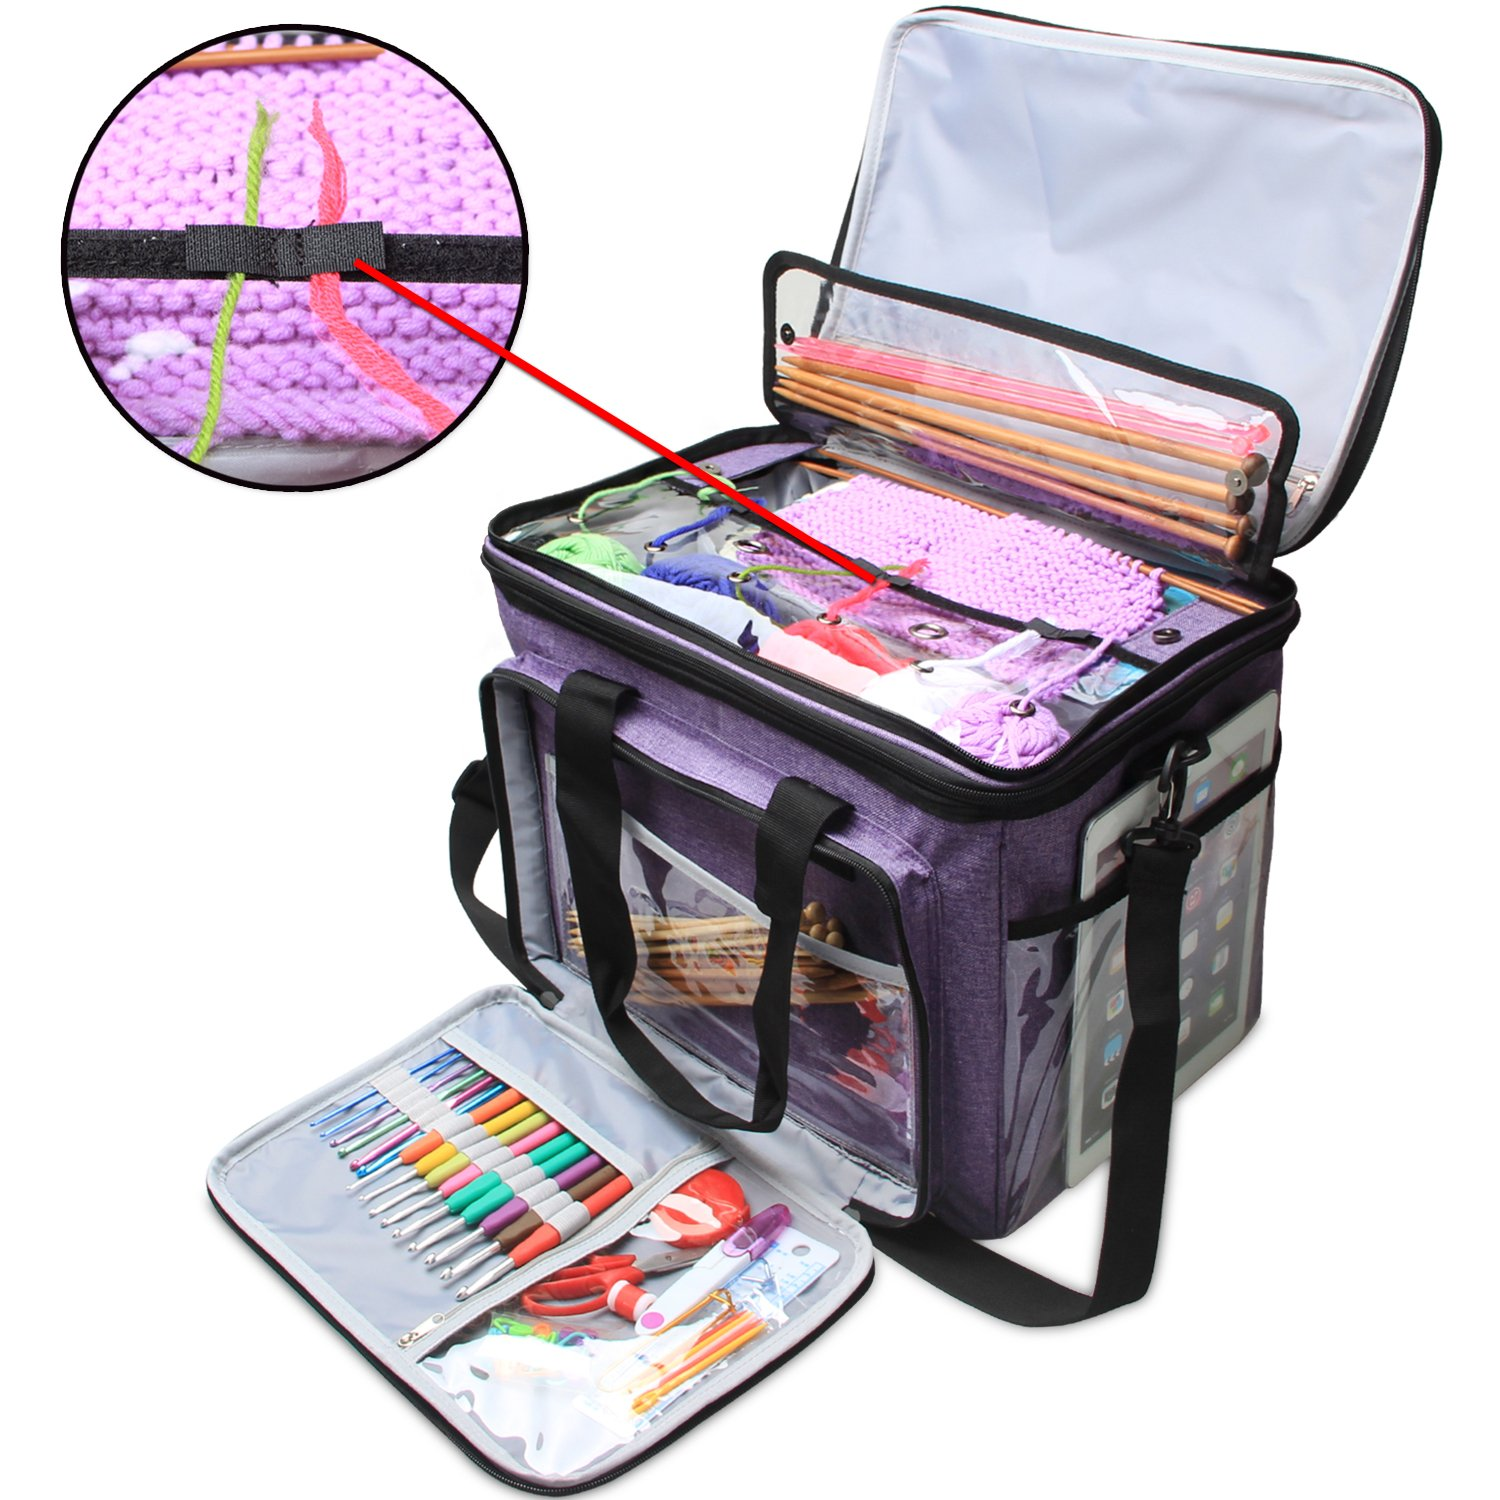 Teamoy Knitting Bag, Yarn Tote Organizer with Cover and Inner Divider (Sewn to Bottom) for Crochet Hooks, Knitting Needles(up to 14''), Project and Supplies, Purple(No Accessories Included)